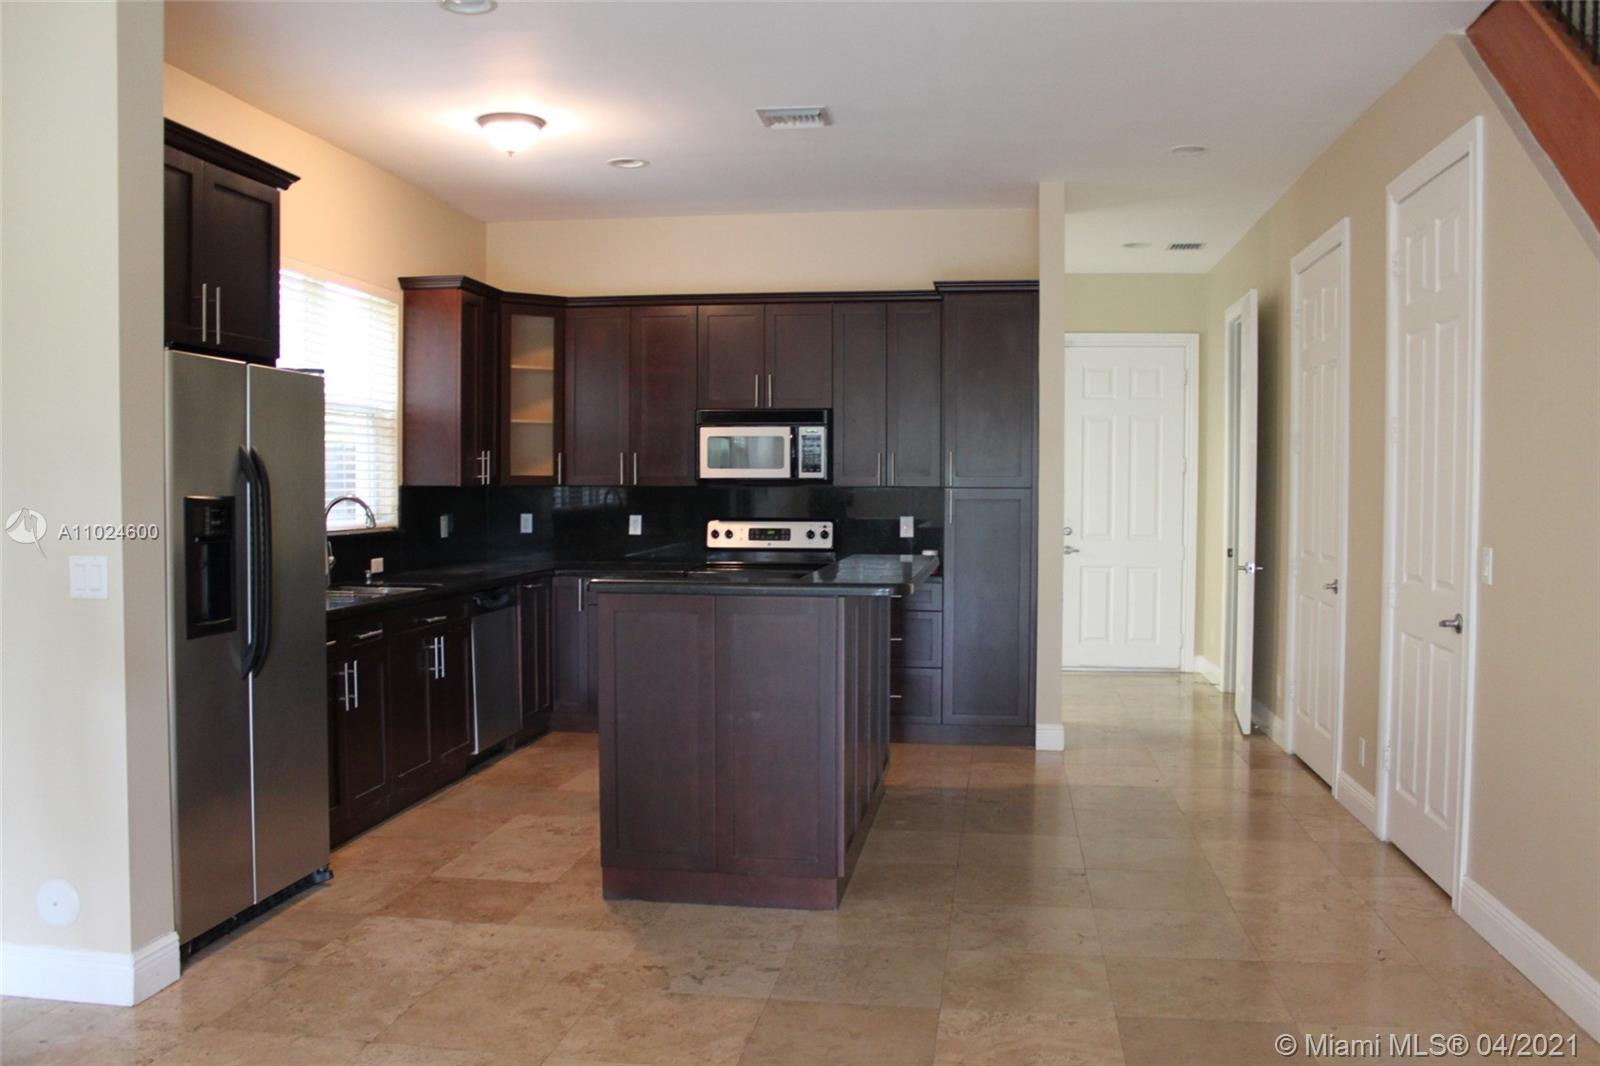 2-story Townhome, Gourmet kitchen with granite countertops, stainless steel appliances.Marble floor